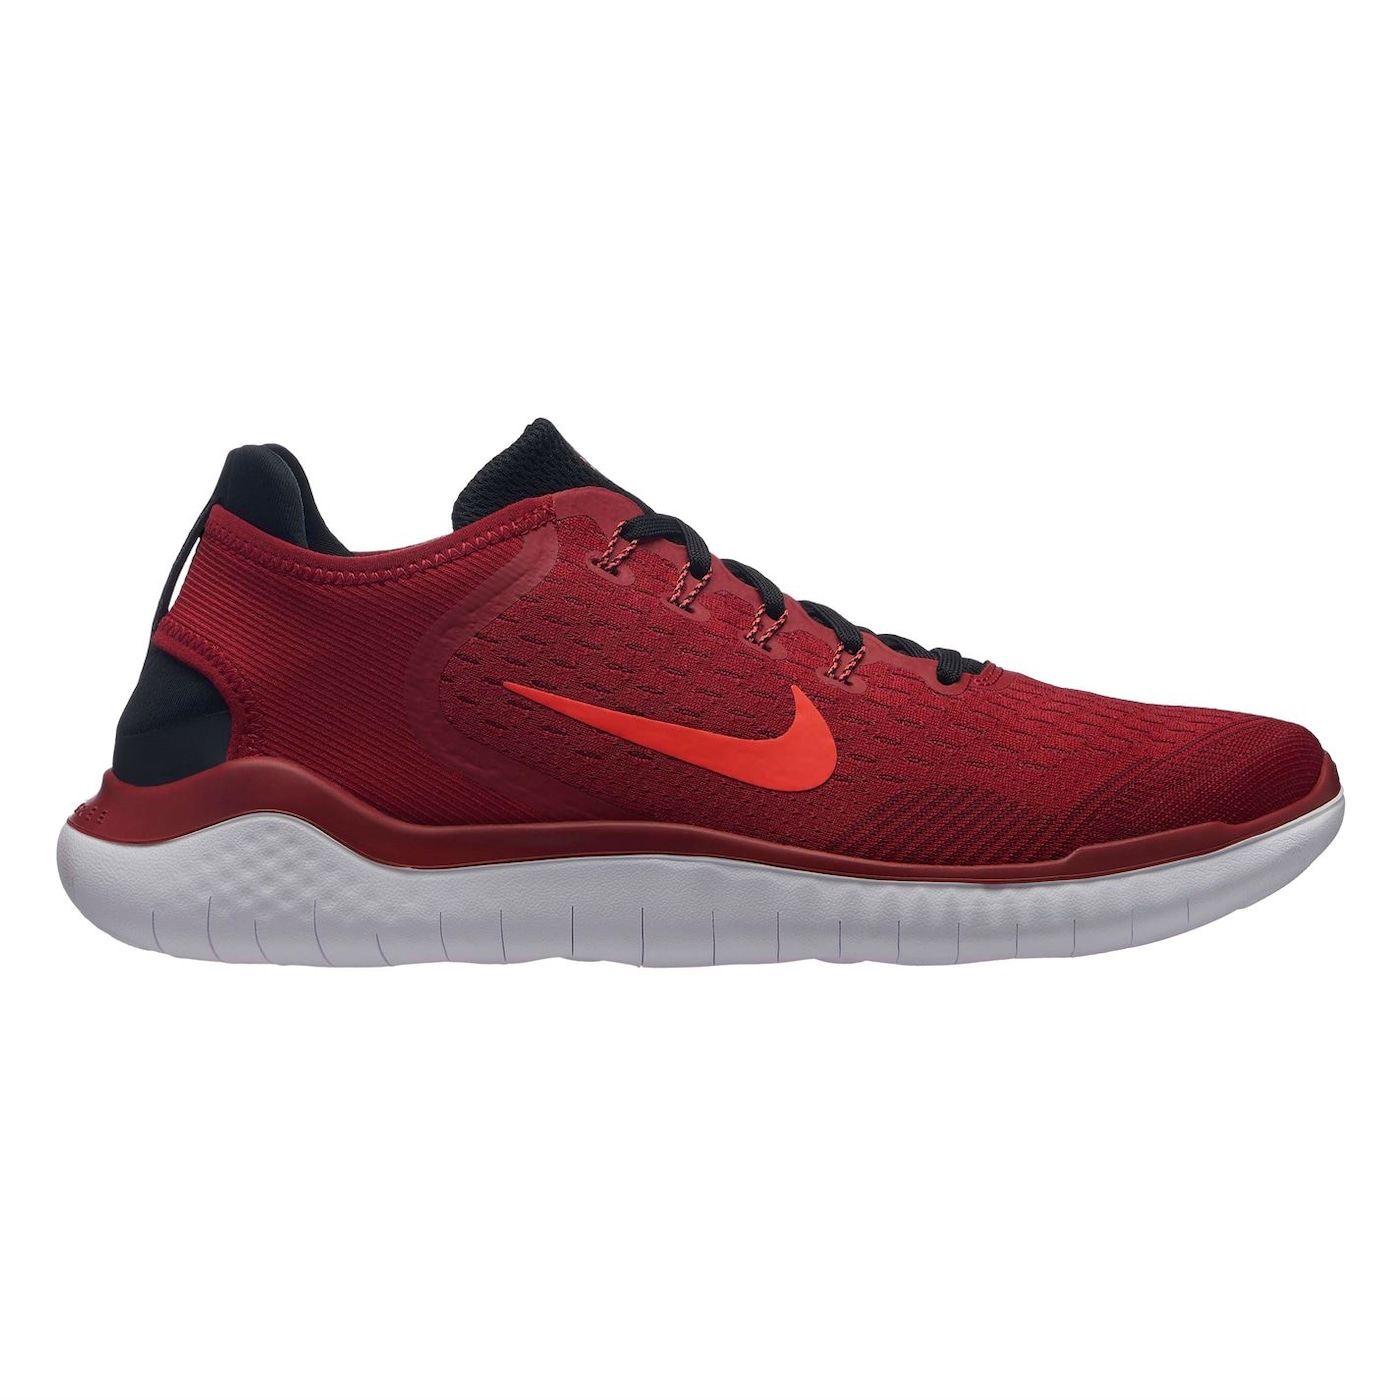 Nike Free Run 2018 Mens Running Shoes